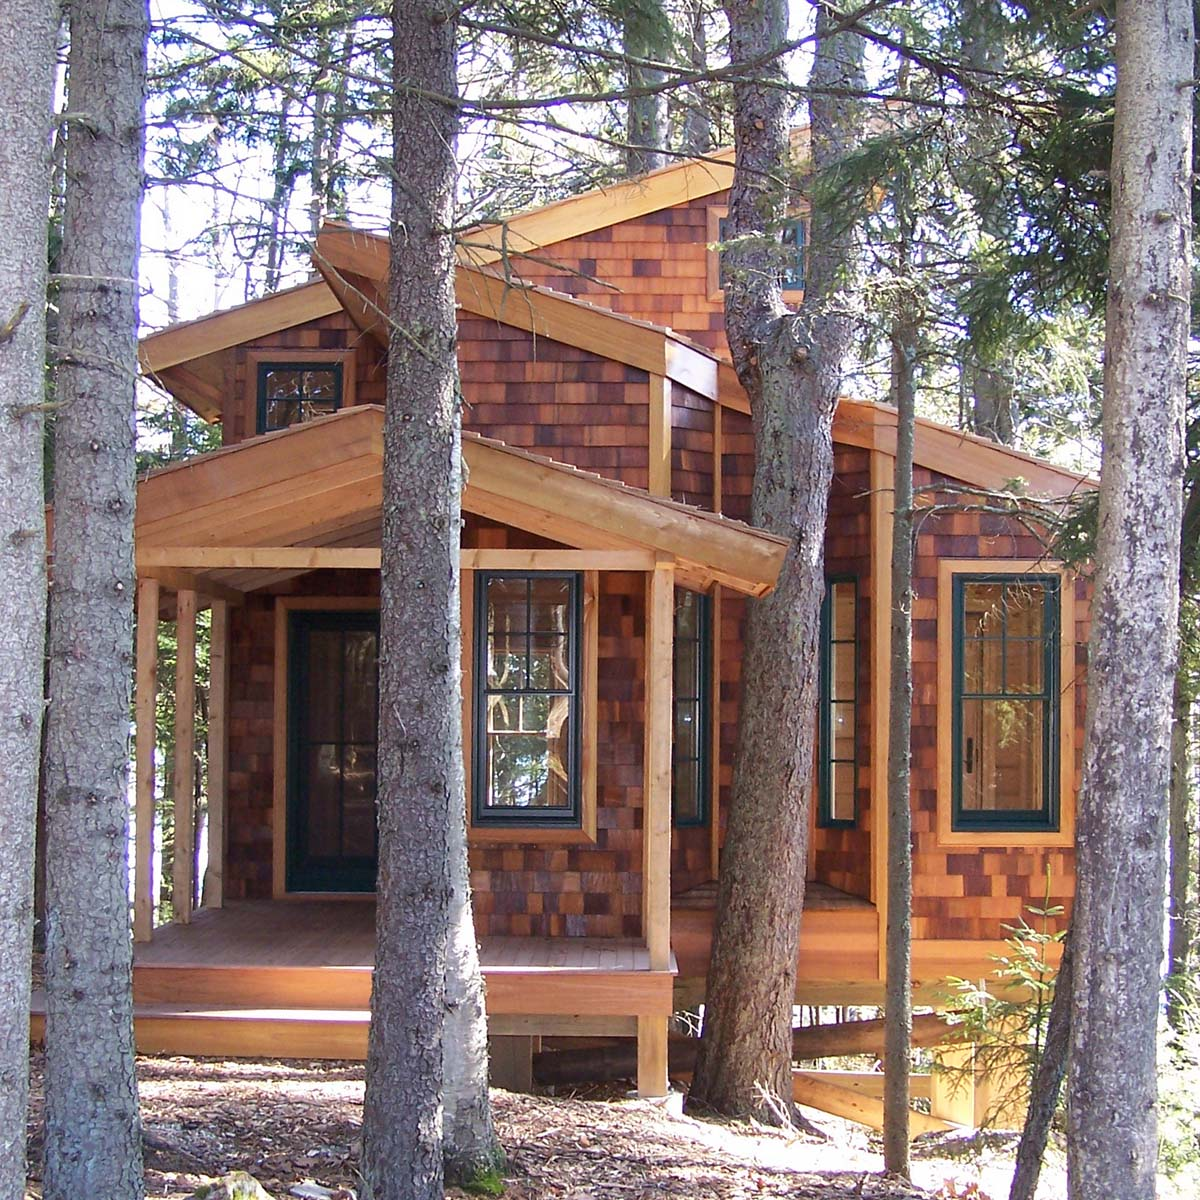 Gallery a tiny house in the trees david matero small for Small house bliss